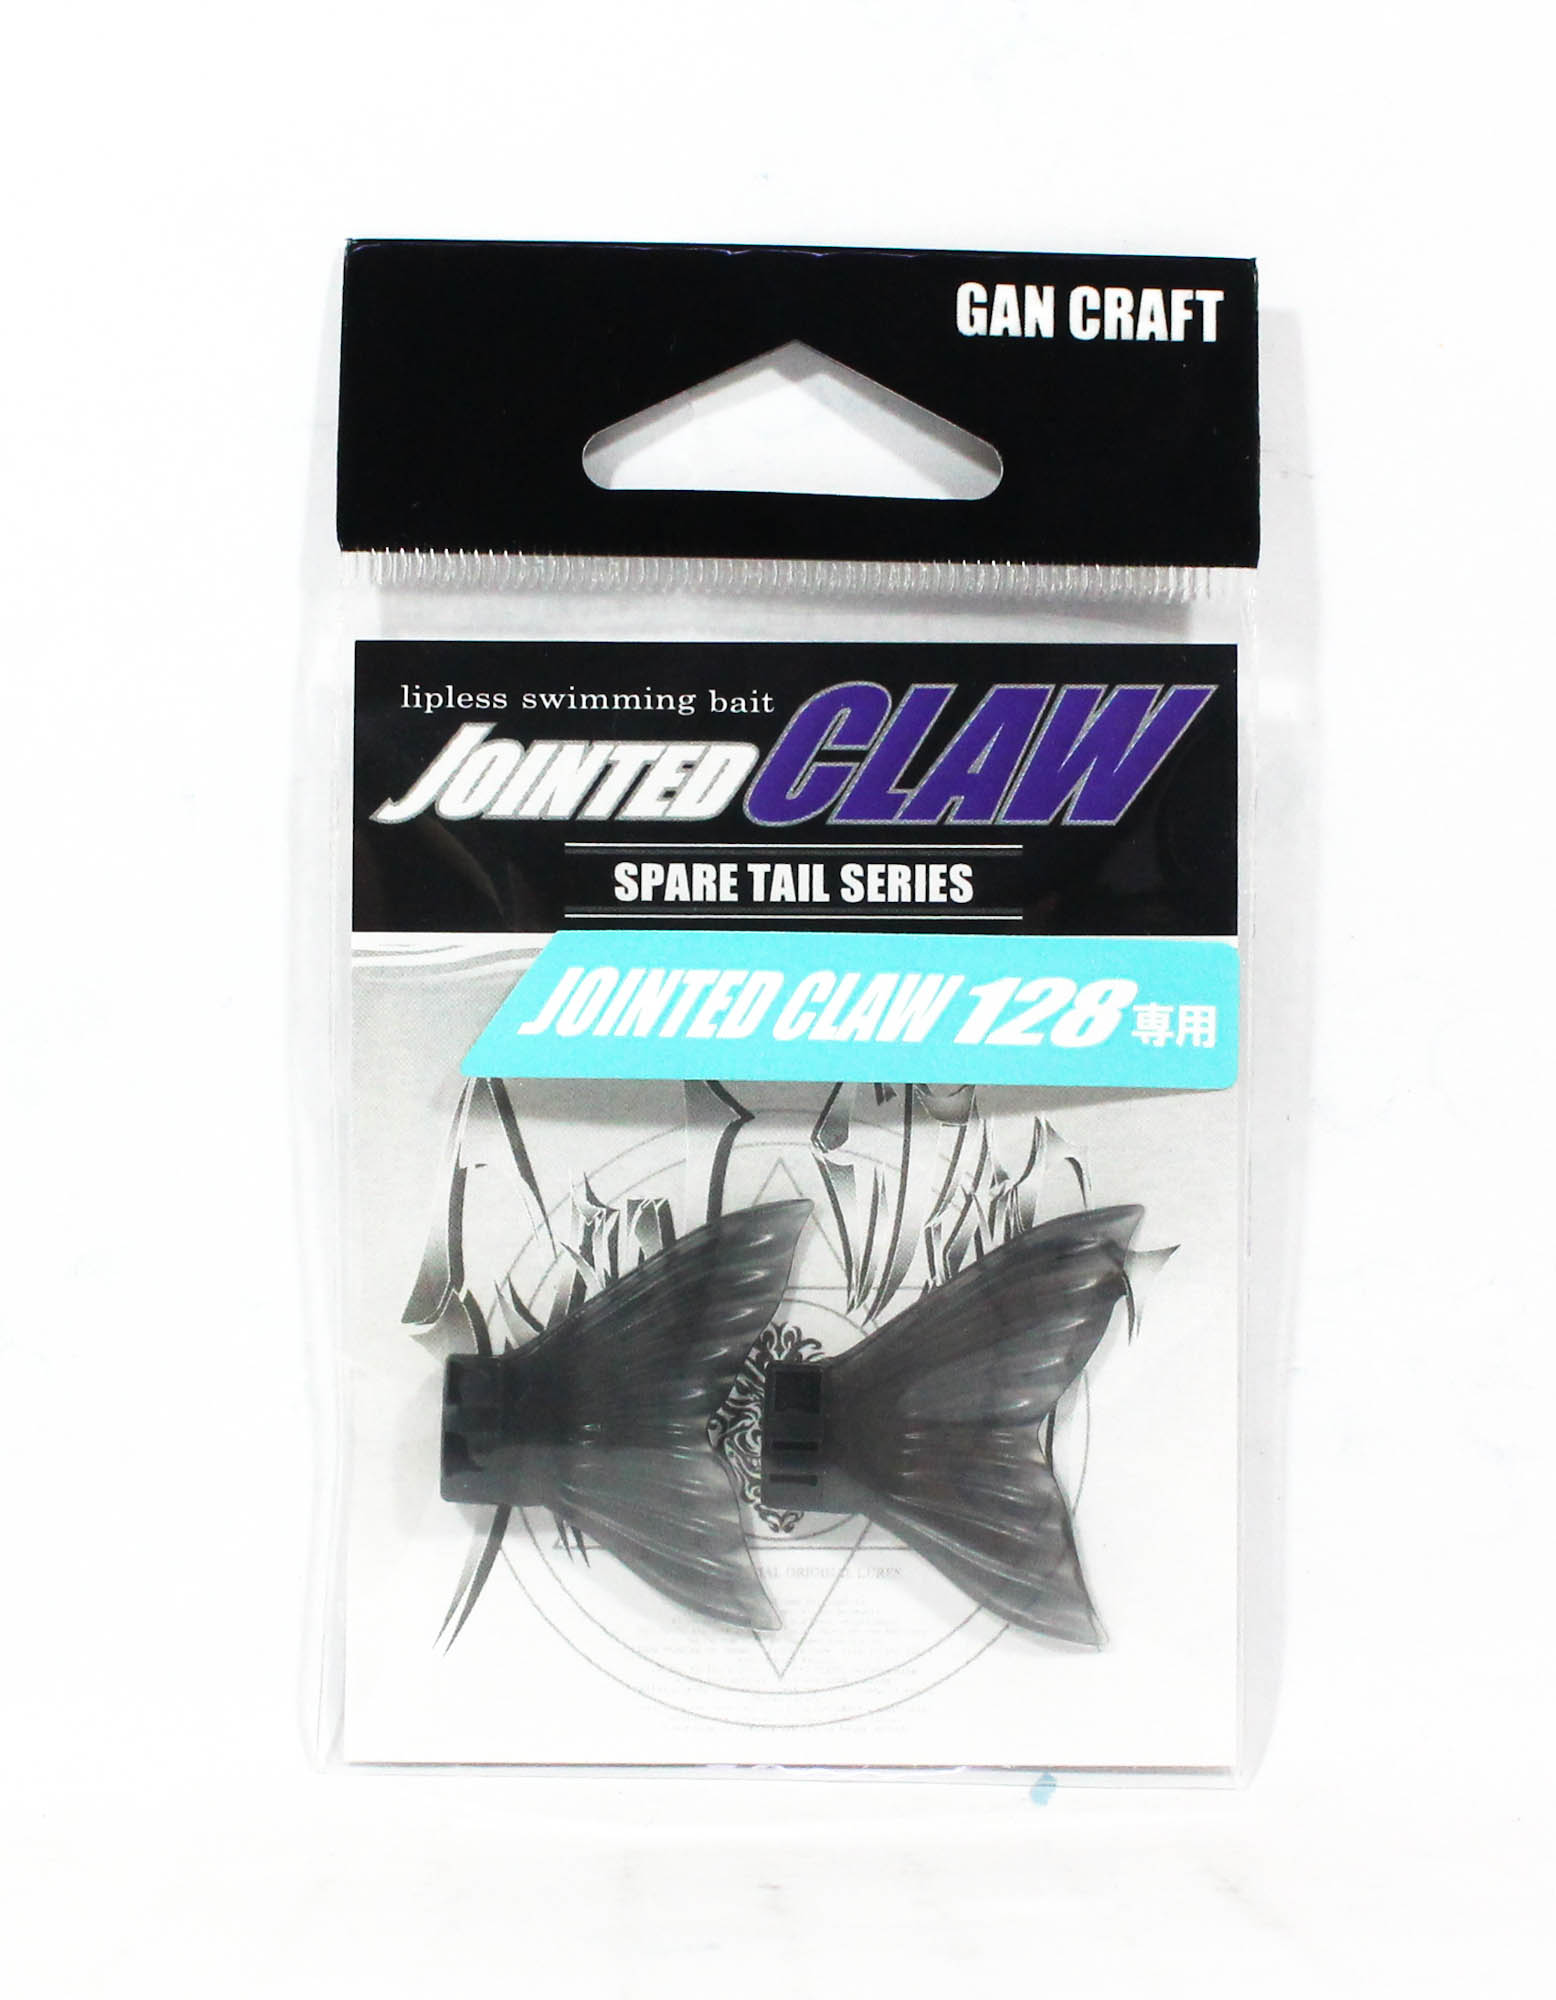 Gan Craft Jointed Claw 128 Spare Tail Normal 01 (1509)